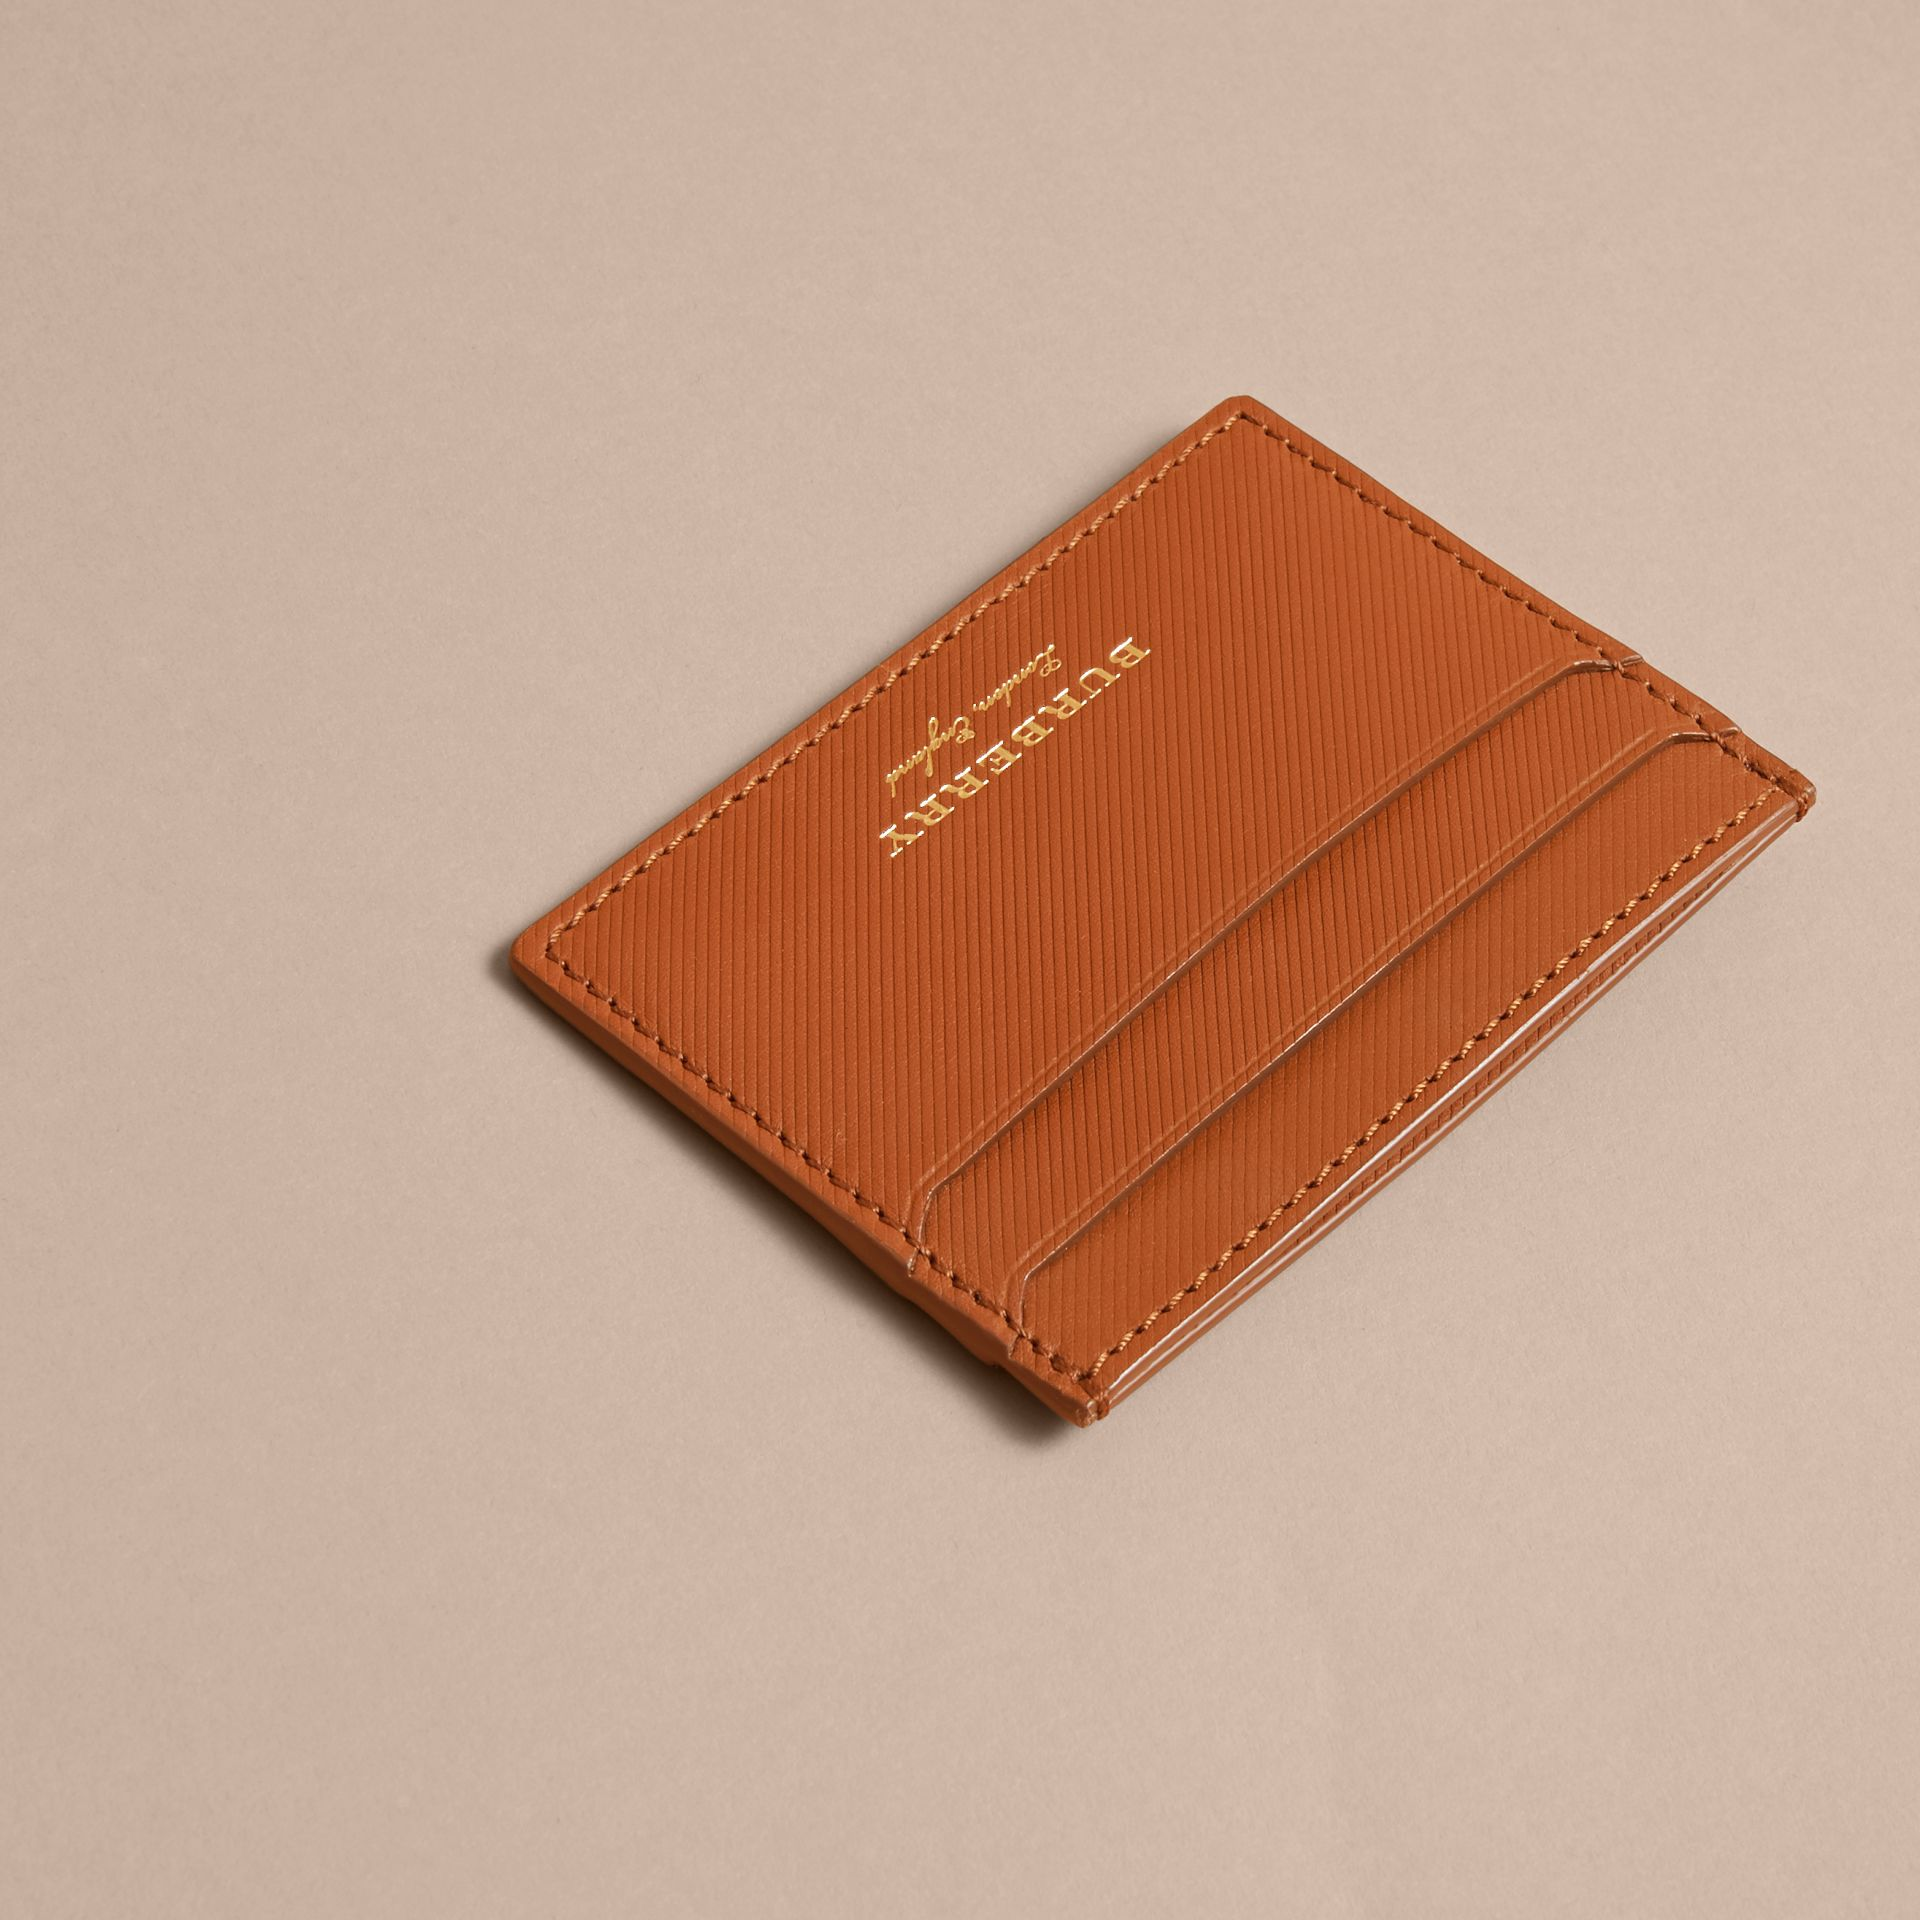 Trench Leather Card Case in Tan - Men | Burberry Hong Kong - gallery image 2